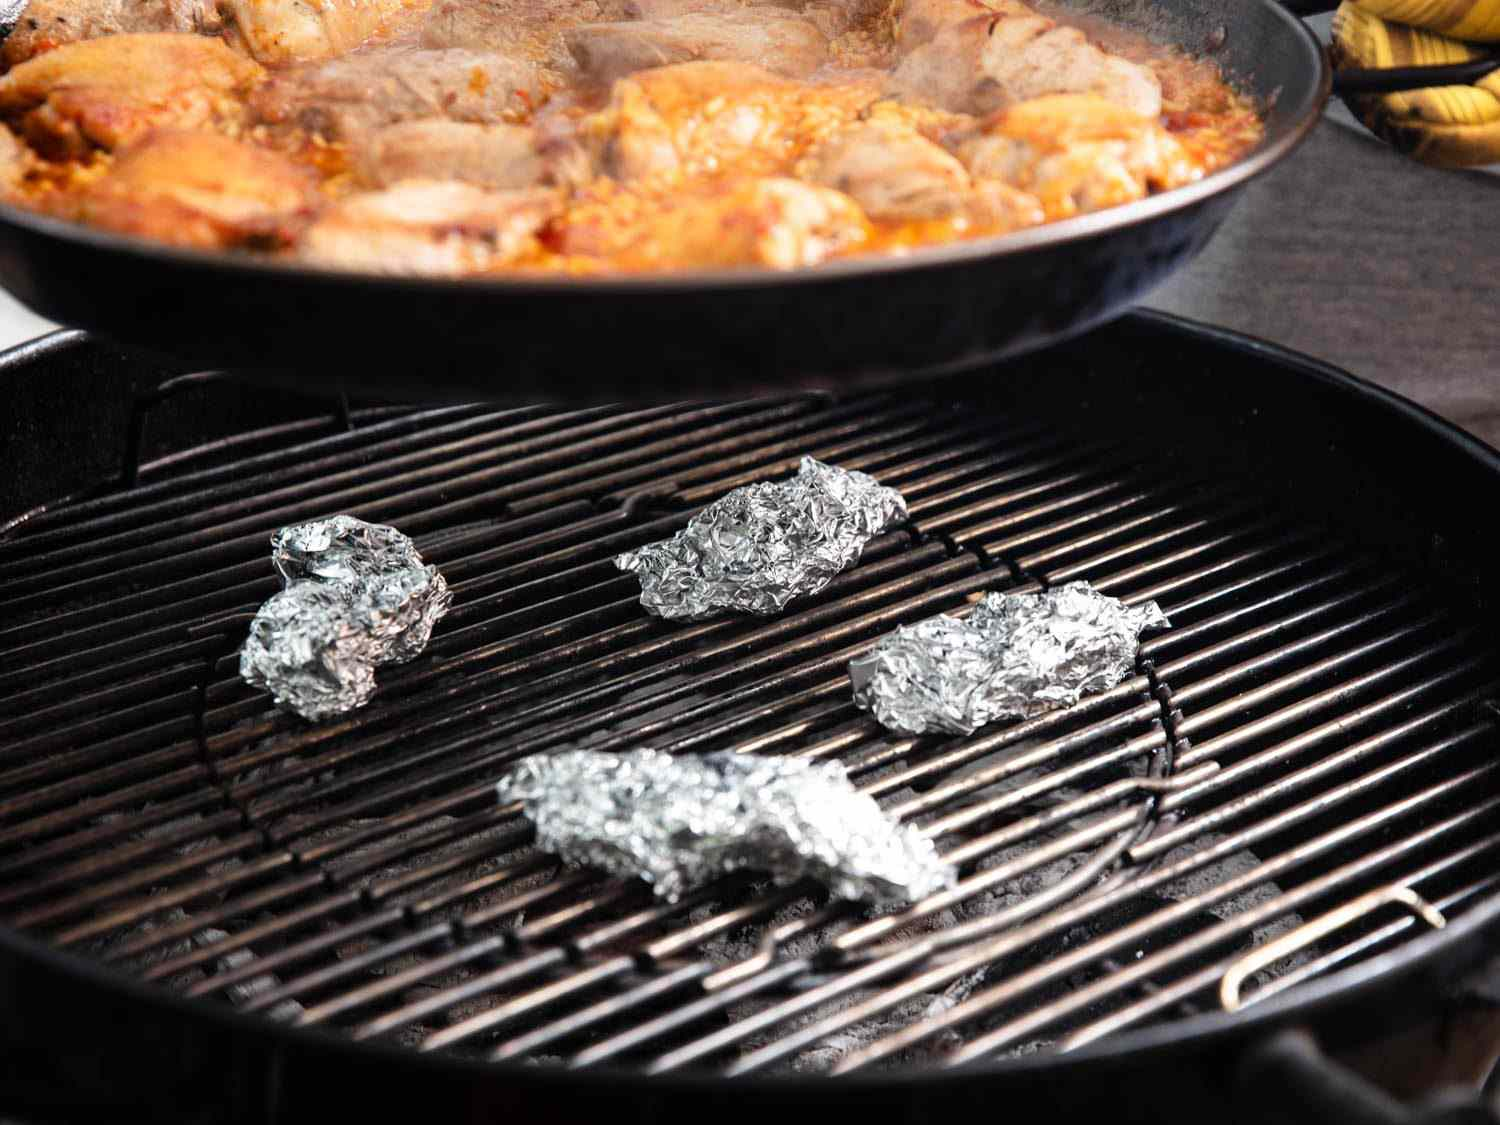 Pieces of aluminum foil can life the paella pan a little farther from the heat when necessary.